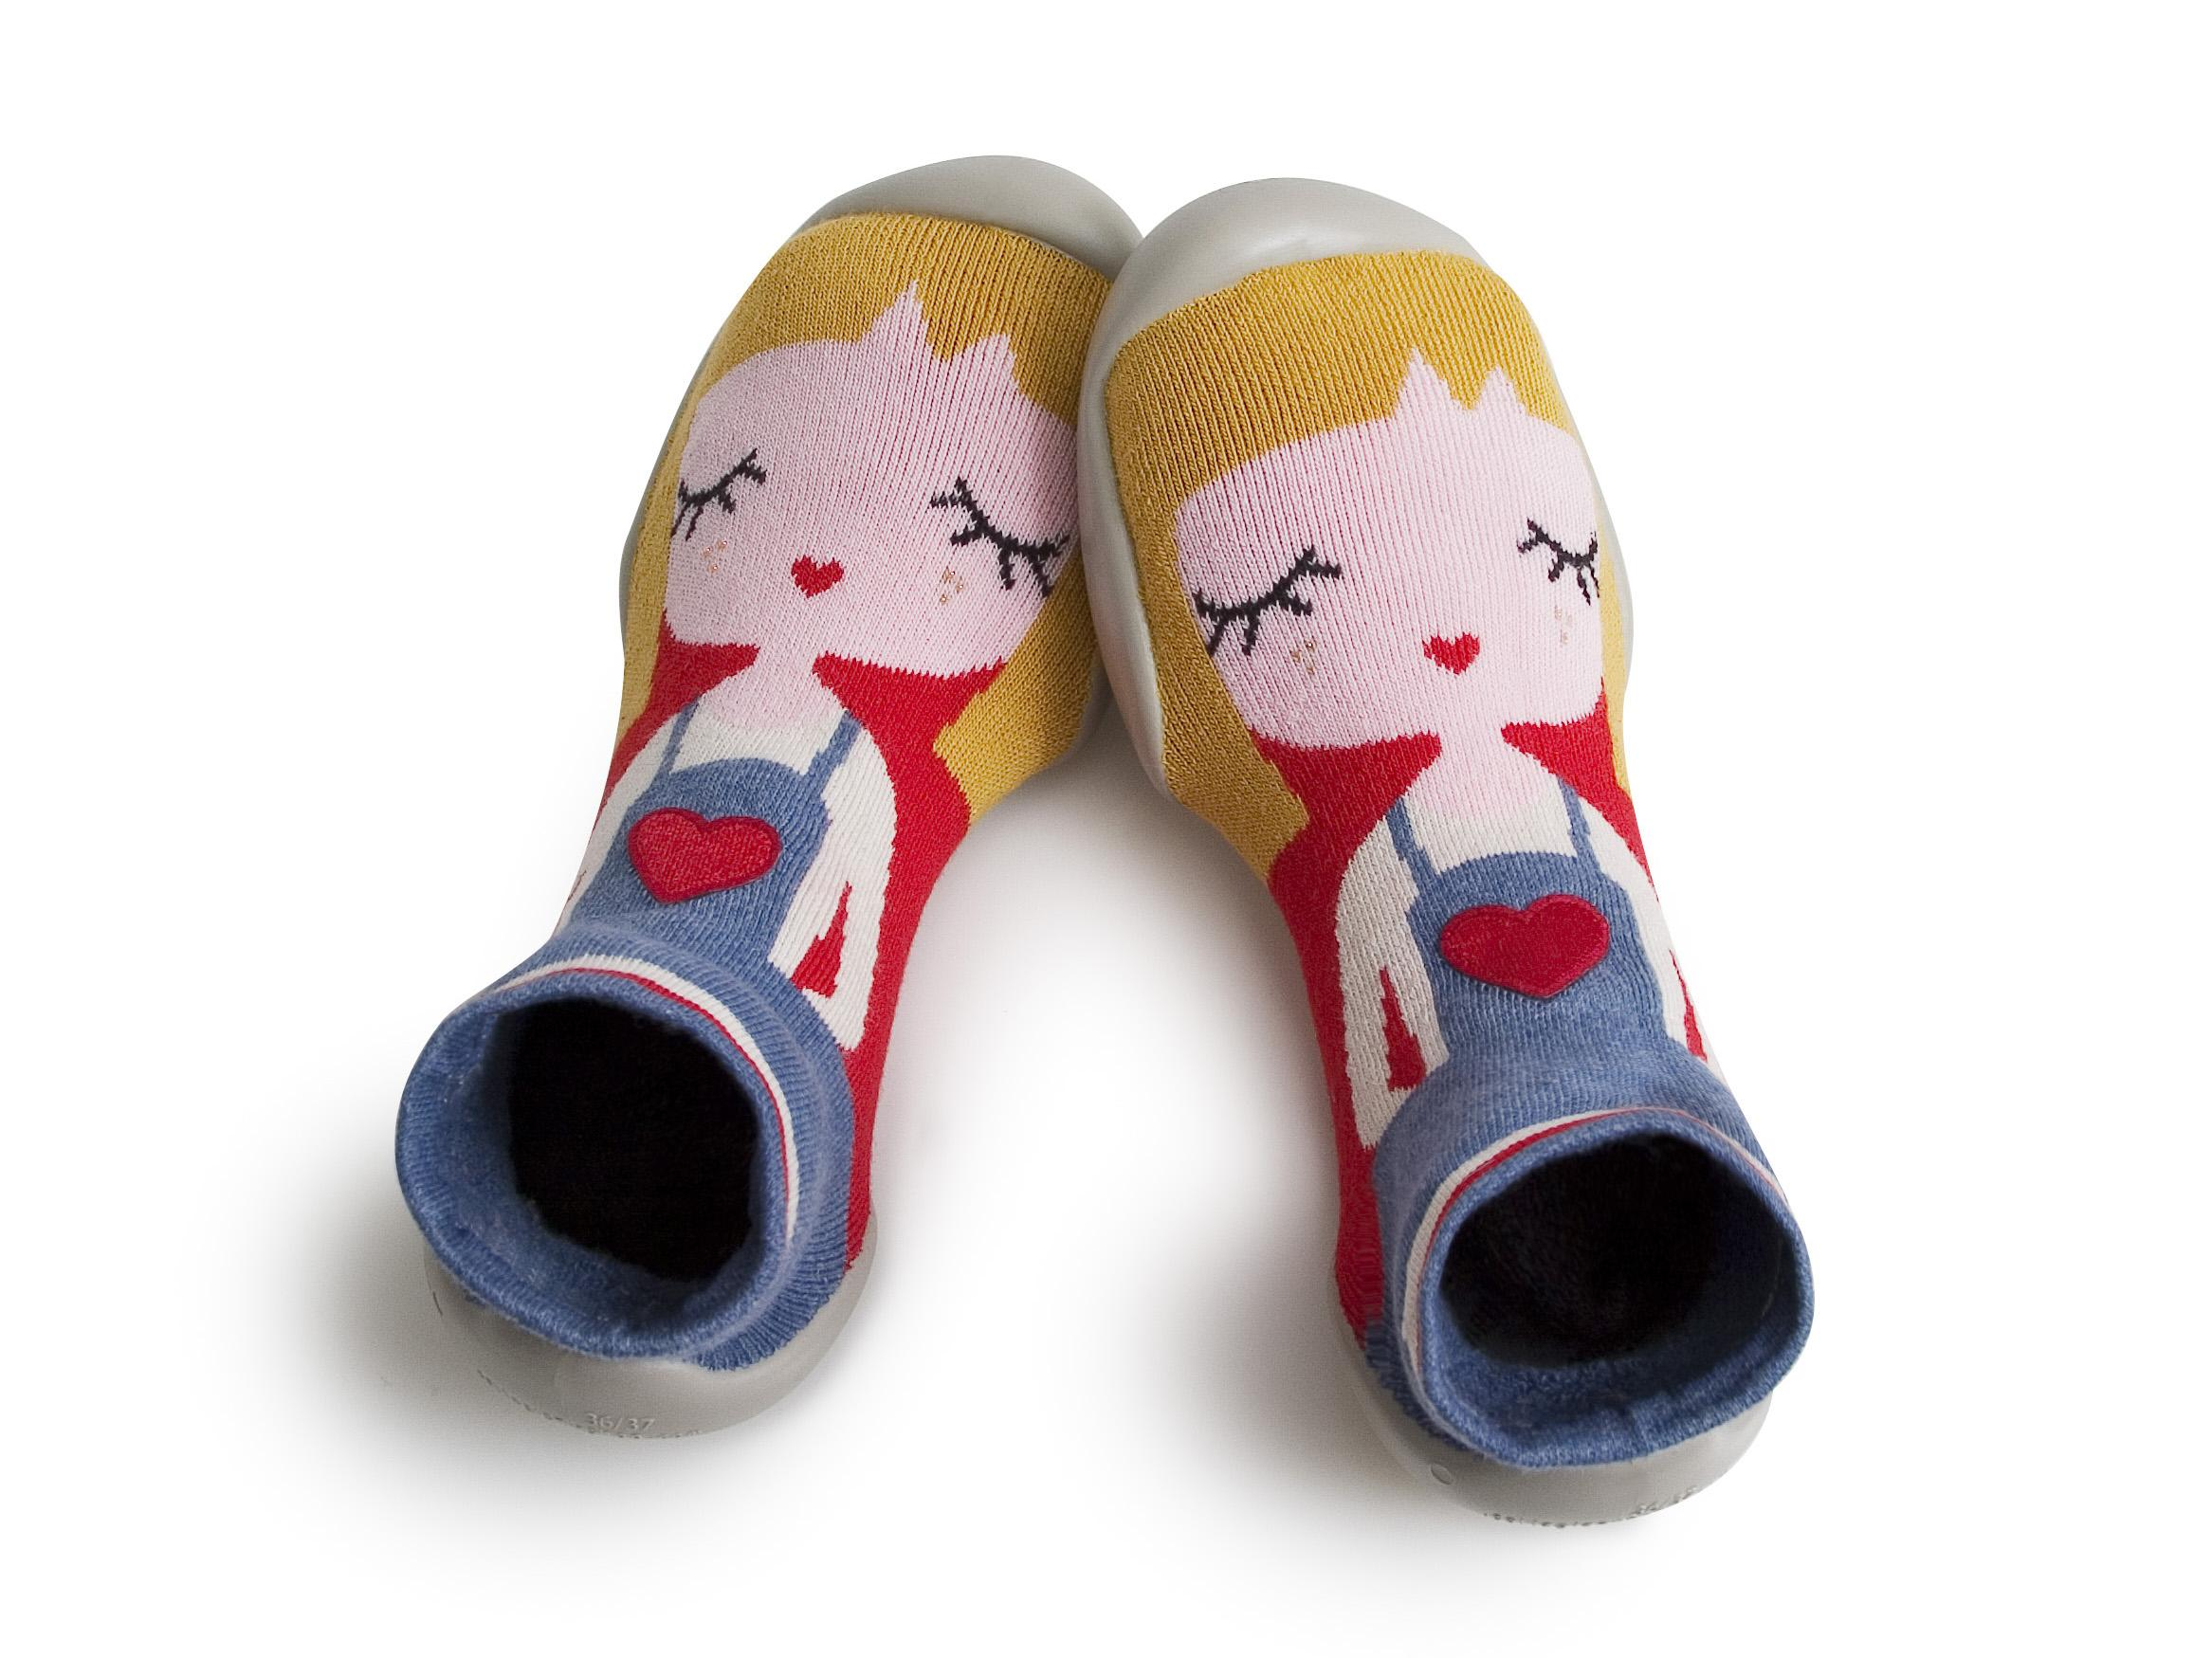 Best slipper socks for toddlers that are warm, comfortable